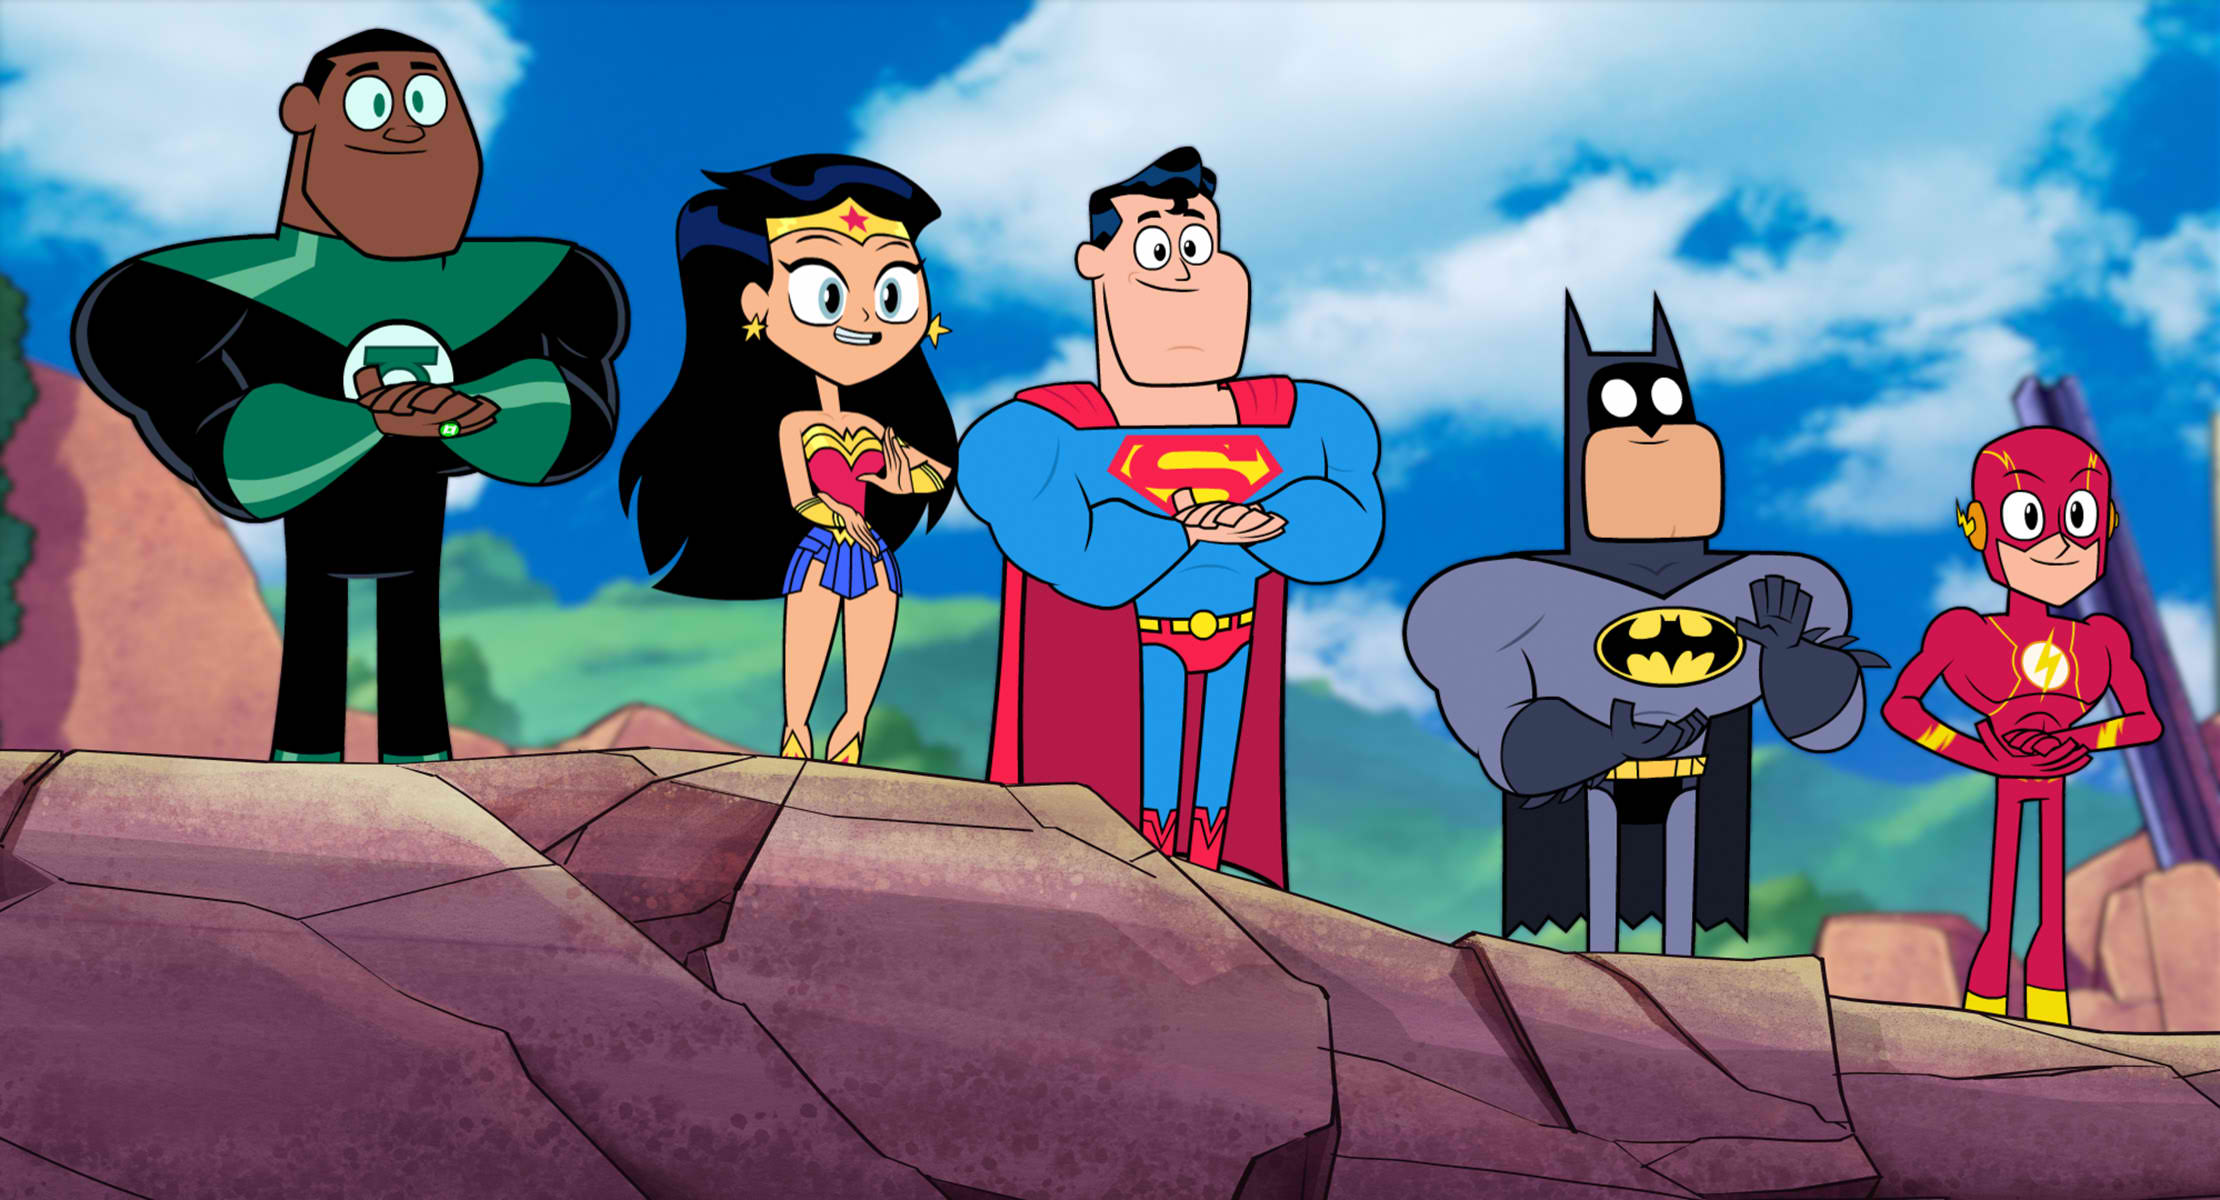 SPECIAL APPEARANCE. The members of the Justice League make a special appearance in the movie.